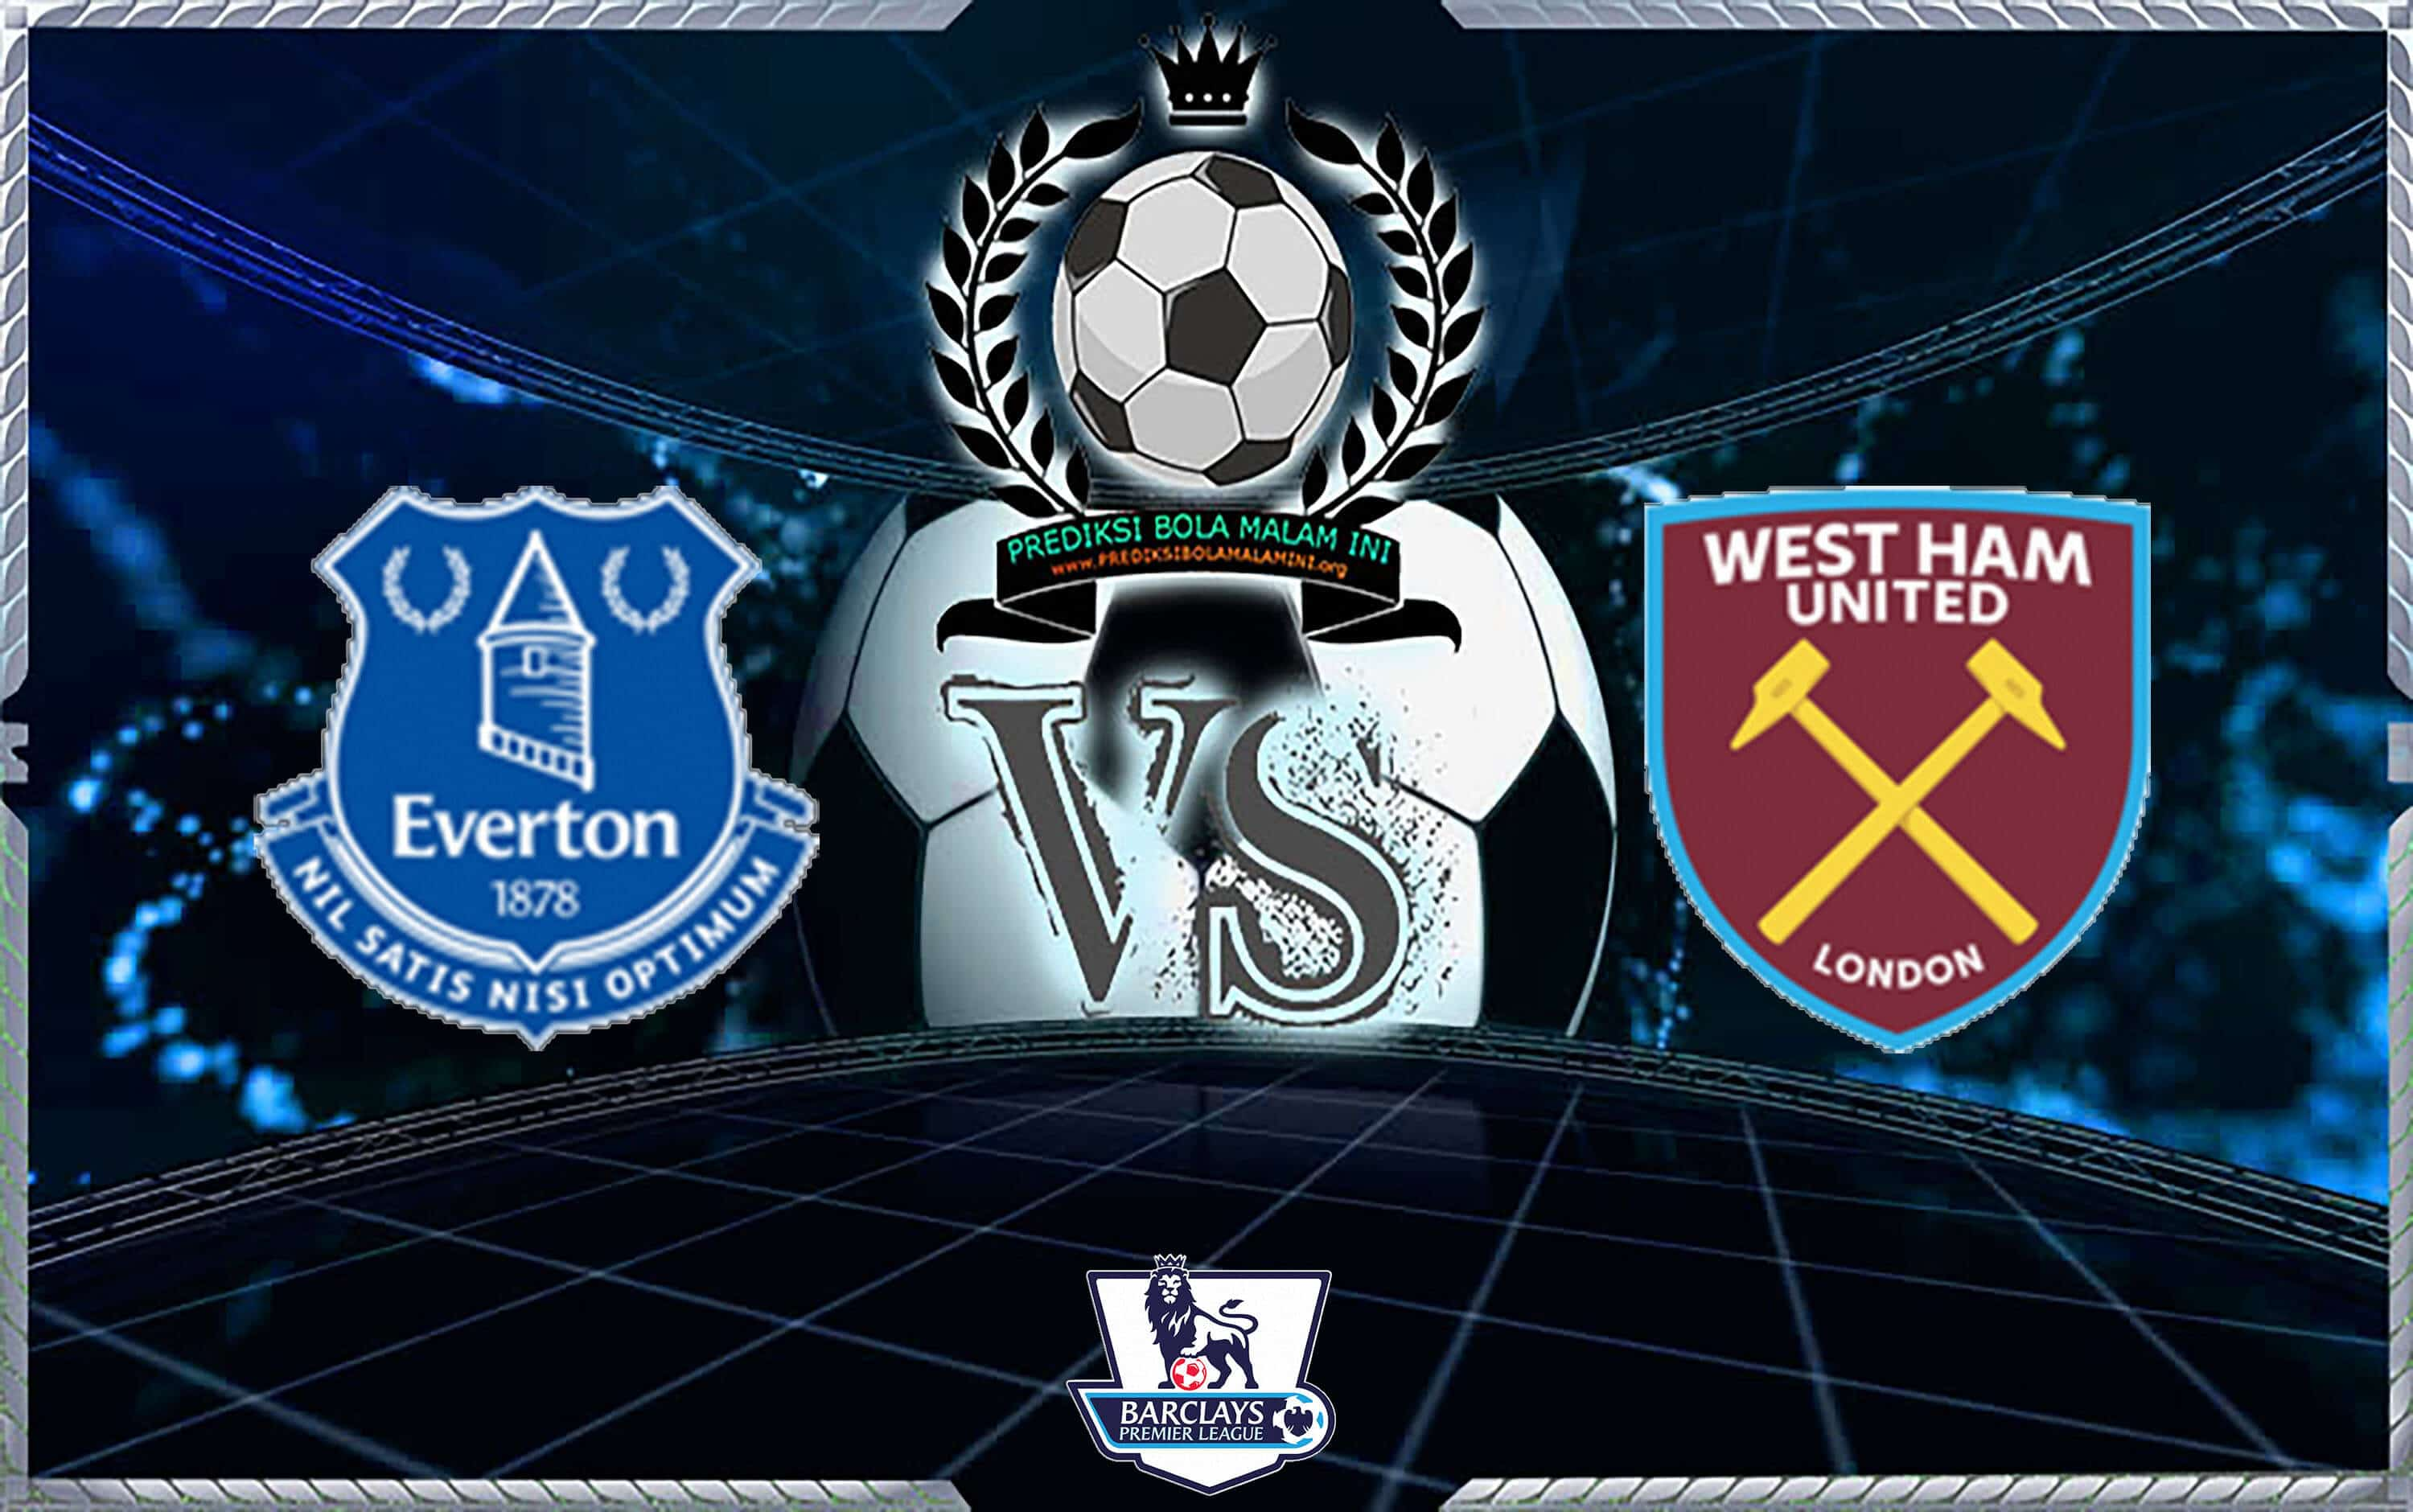 Prediksi Scor EVERTON vs WEST HAM UNITED 16 September 2018